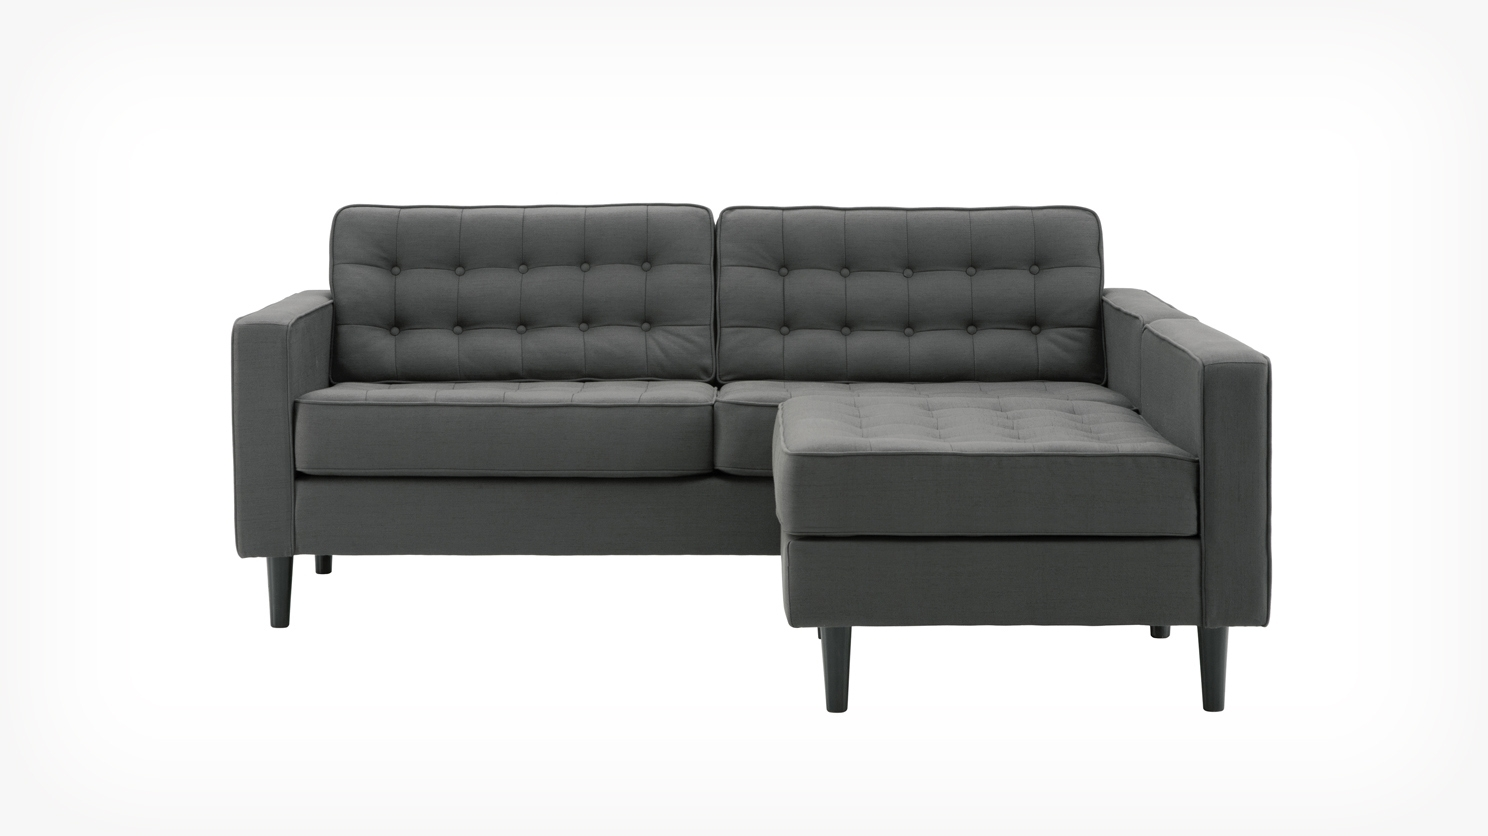 Eq3 | Reverie Apartment 2 Piece Sectional Sofa With Chaise – Fabric Regarding Apartment Sectional Sofas With Chaise (Image 5 of 10)